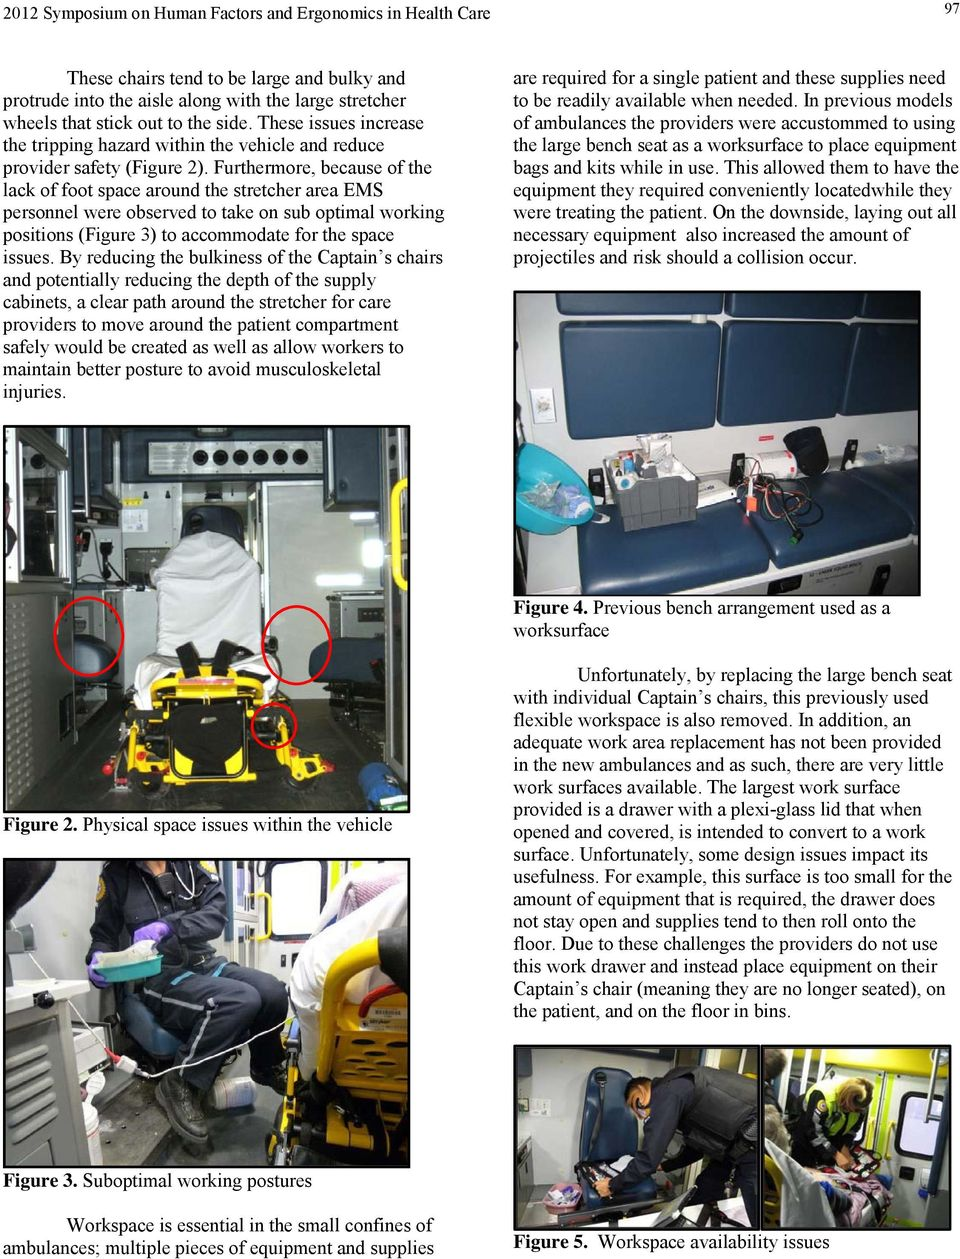 Furthermore, because of the lack of foot space around the stretcher area EMS personnel were observed to take on sub optimal working positions (Figure 3) to accommodate for the space issues.